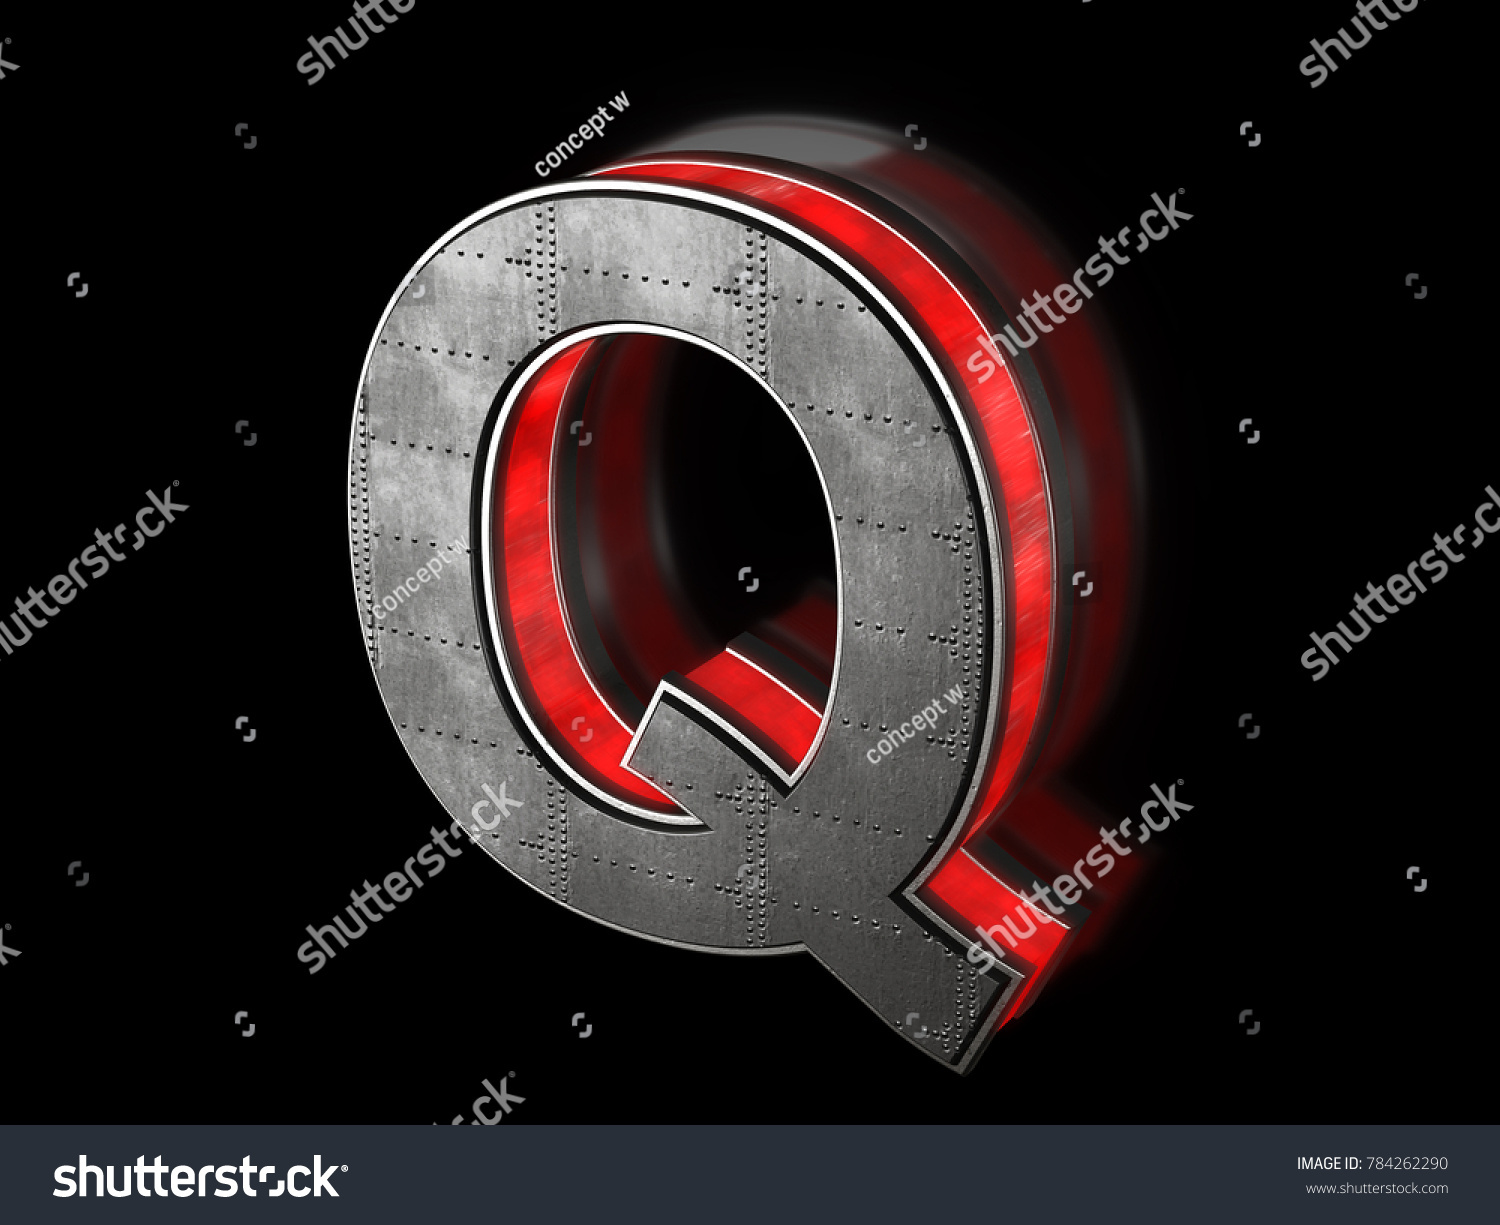 Futuristic letter Q - black metallic extruded letter with red light outline  glowing in the dark